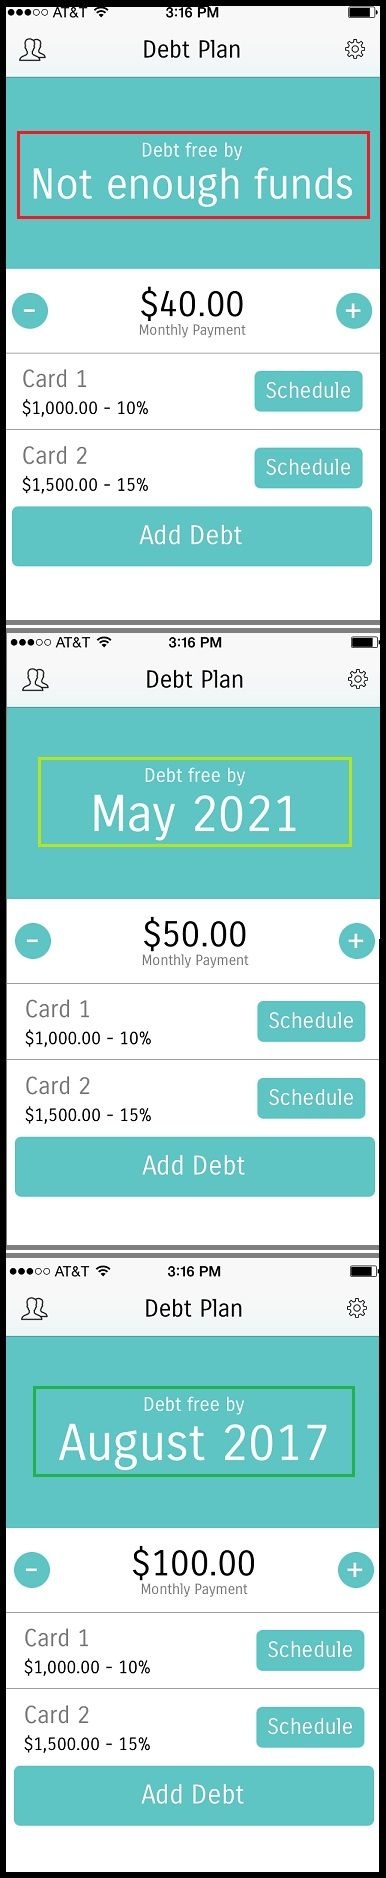 This app is really cool and really simple. It will help you estimate how long to pay off your debt. It's free too! It's about time to create a plan and get that debt paid off! Do it like we did.